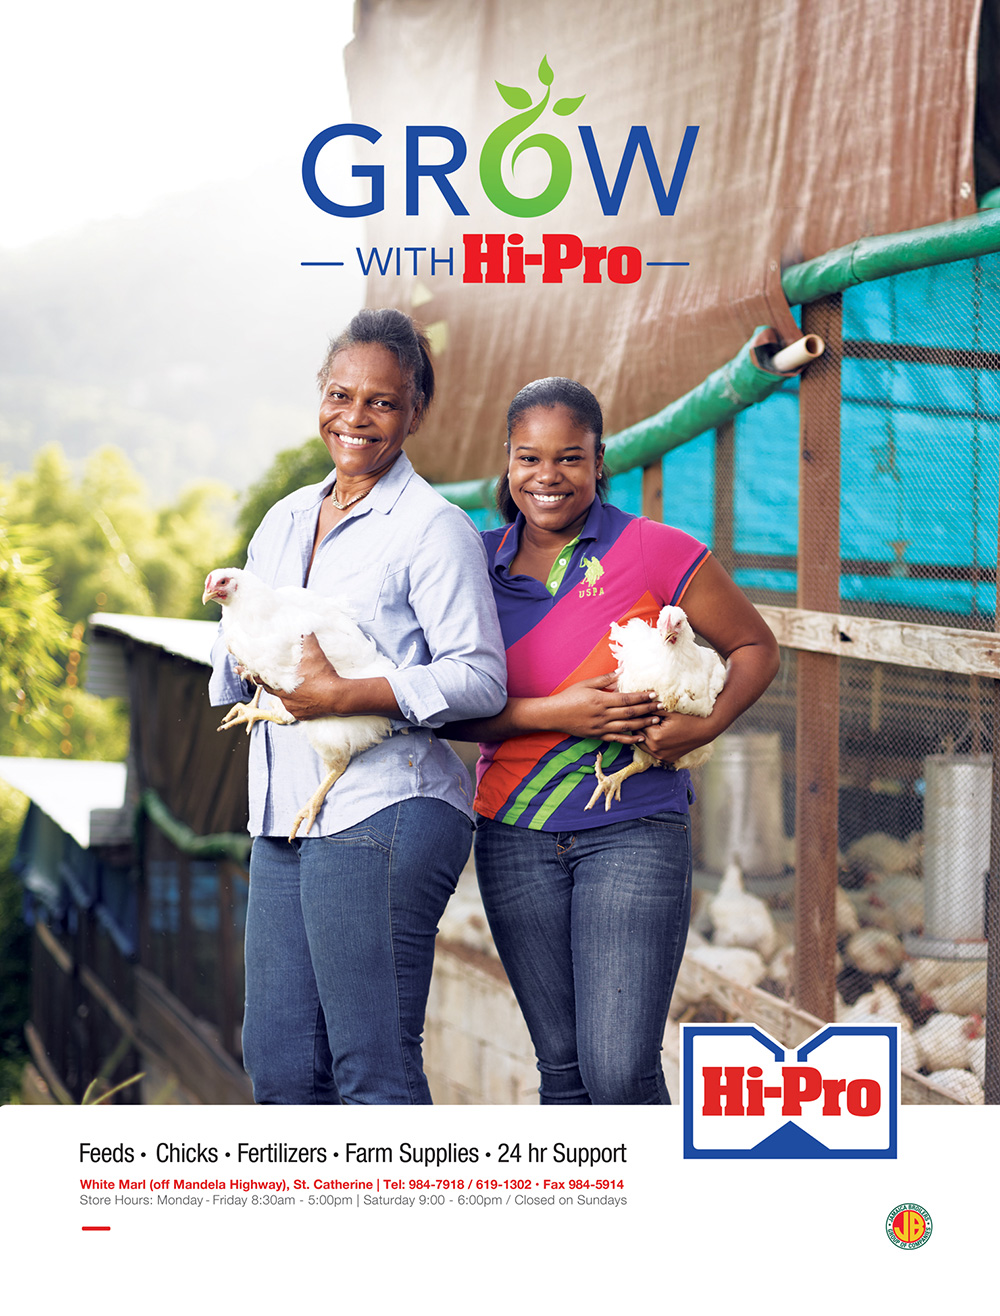 Case-Studies-HiPro_Grow_Broilers1